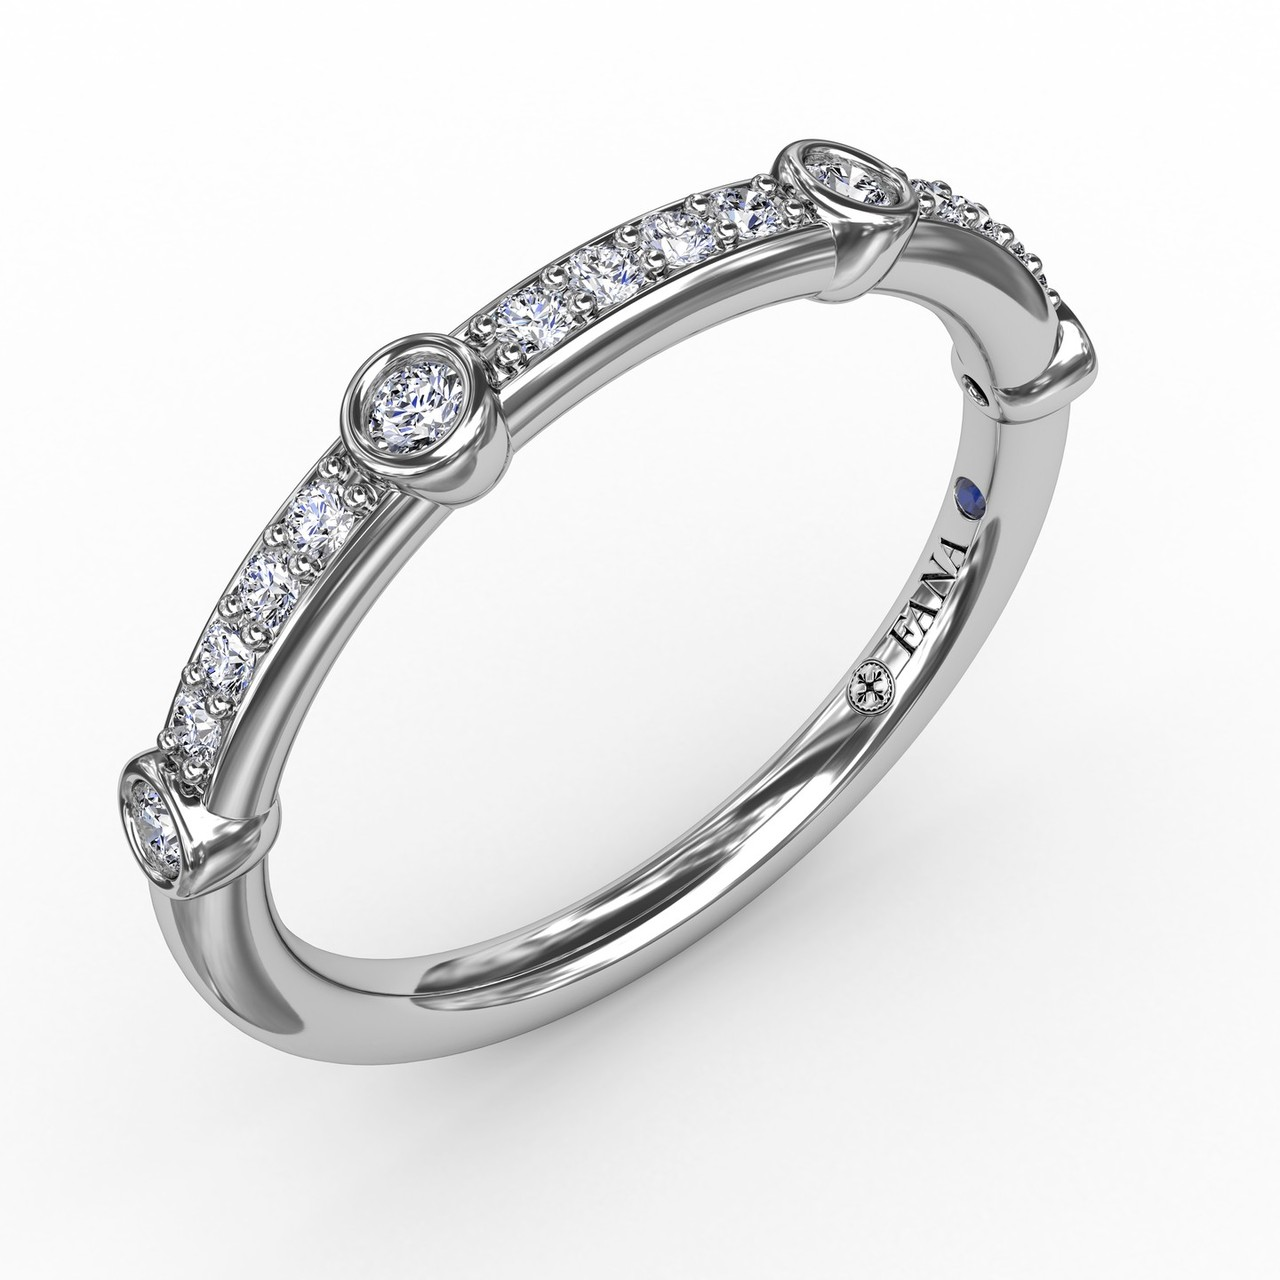 Bead Set Diamond Band with Diamond Bezel Stations - A classic straight diamond band is accented by diamond bezel stations for a whimsical twist on tradition.  Perfect for stacking, this band is available in Platinum, 18KT & 14KT gold and can be customized through an Authorized Fana Retailer.